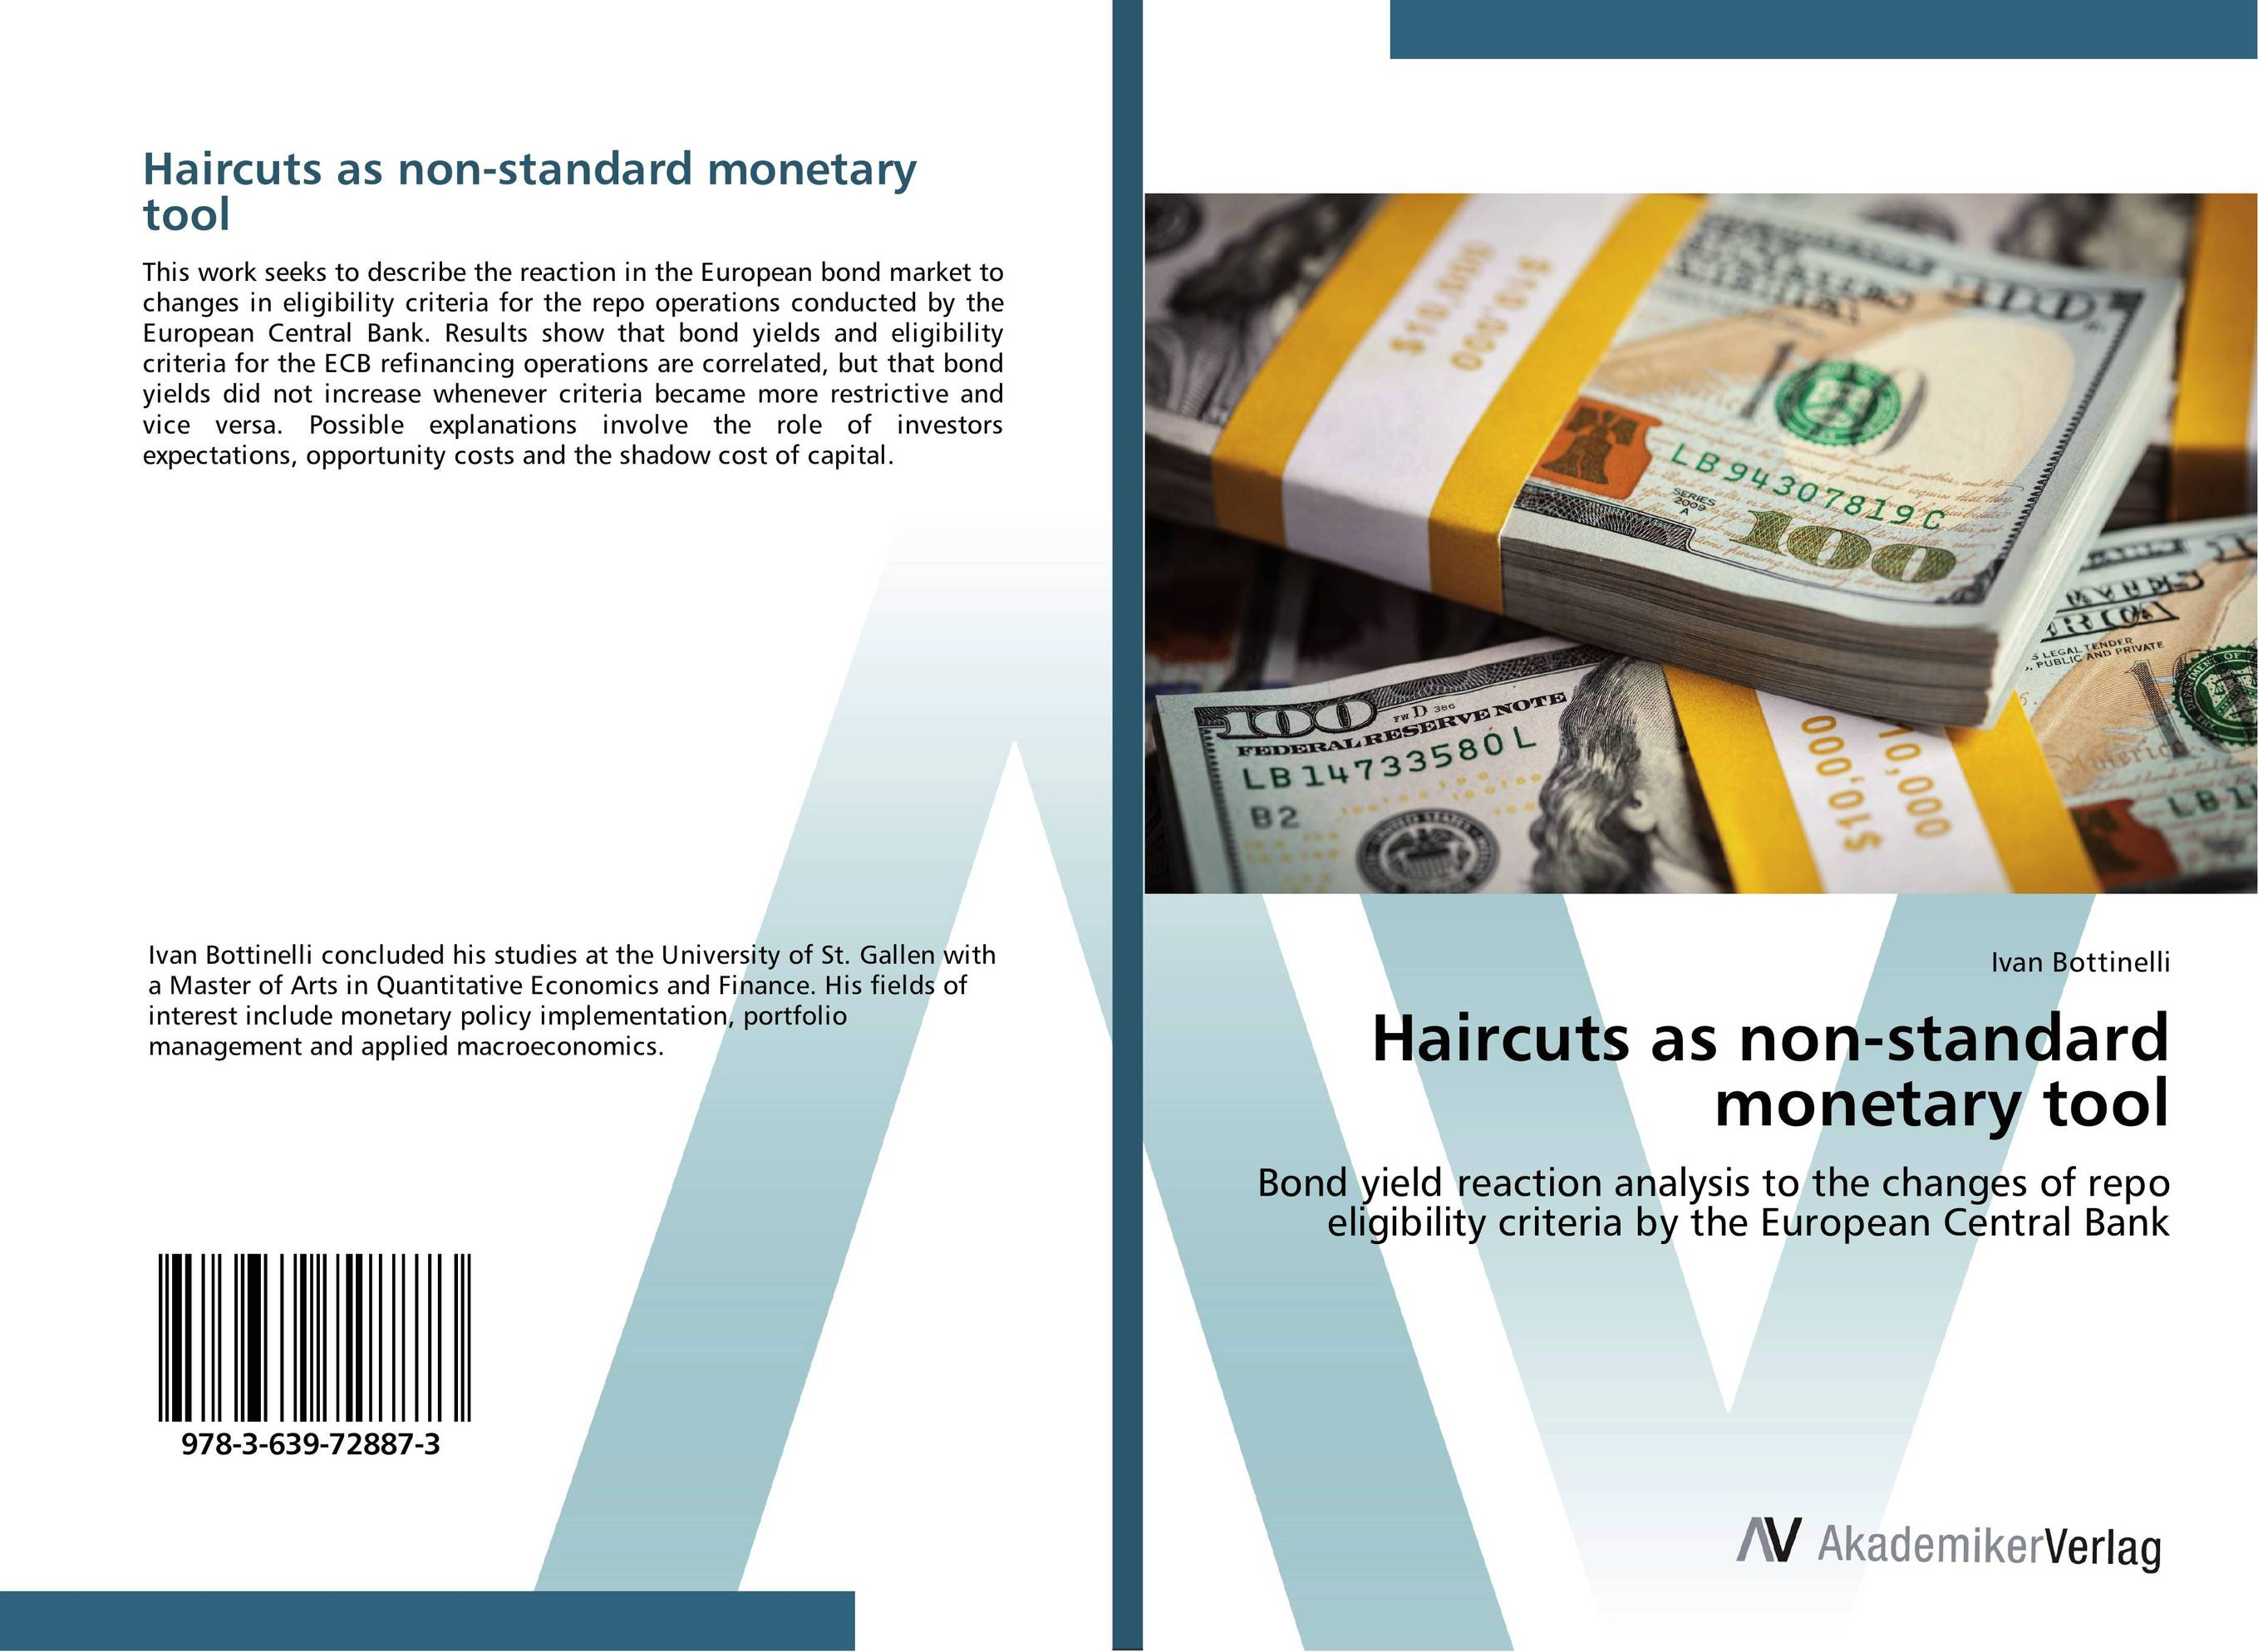 Haircuts as non-standard monetary tool sustainability and the sovereign bond market